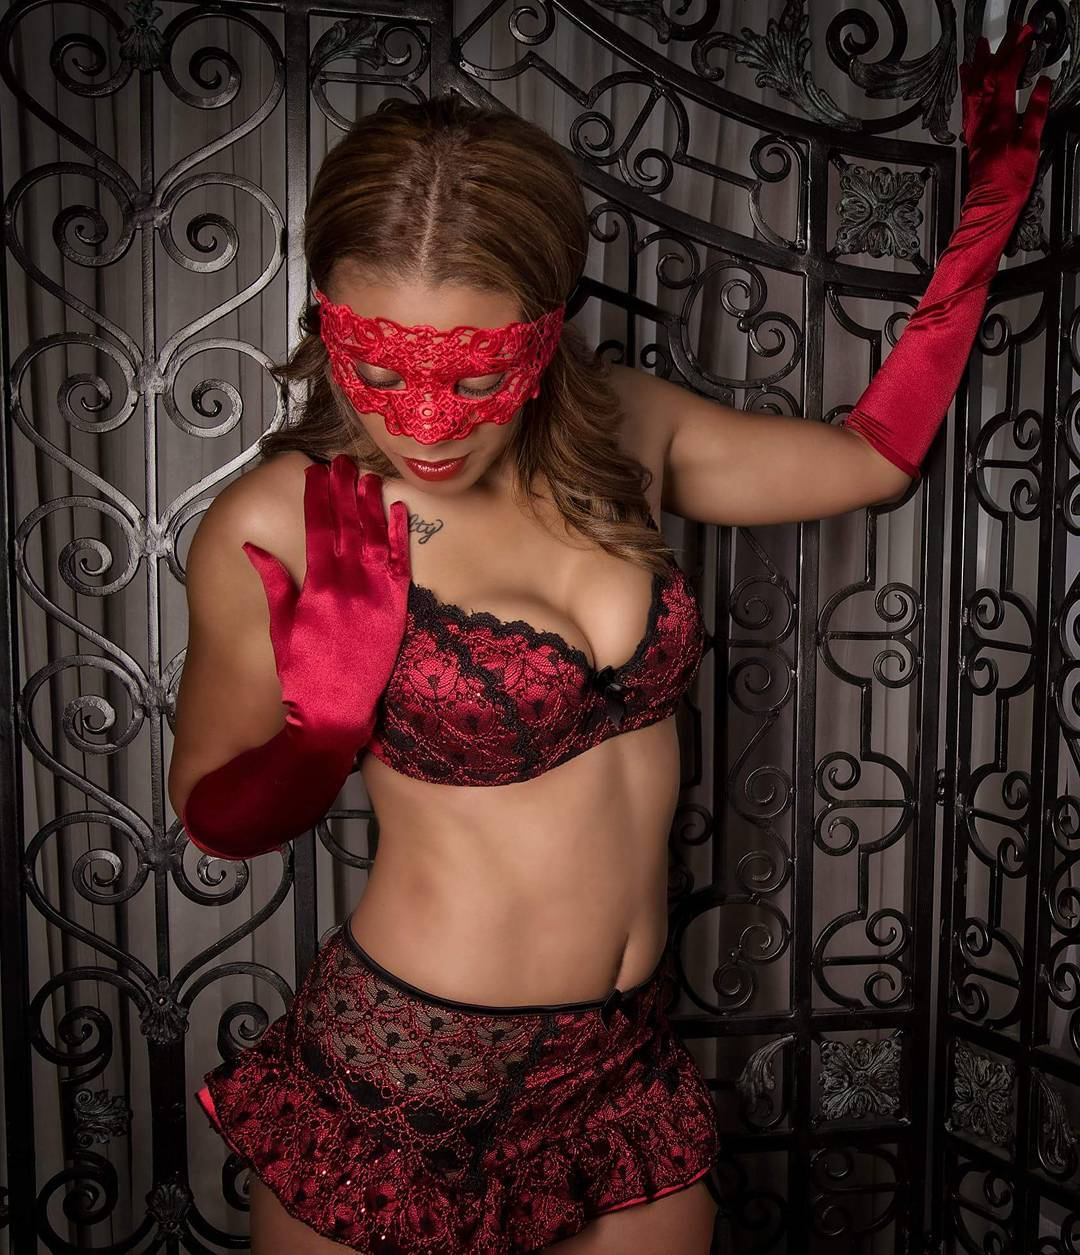 Model wearing lacy eye mask, red bra and garter skirt set with red thigh high stockings available from VaVaVooom's selection of lingerie and apparel.